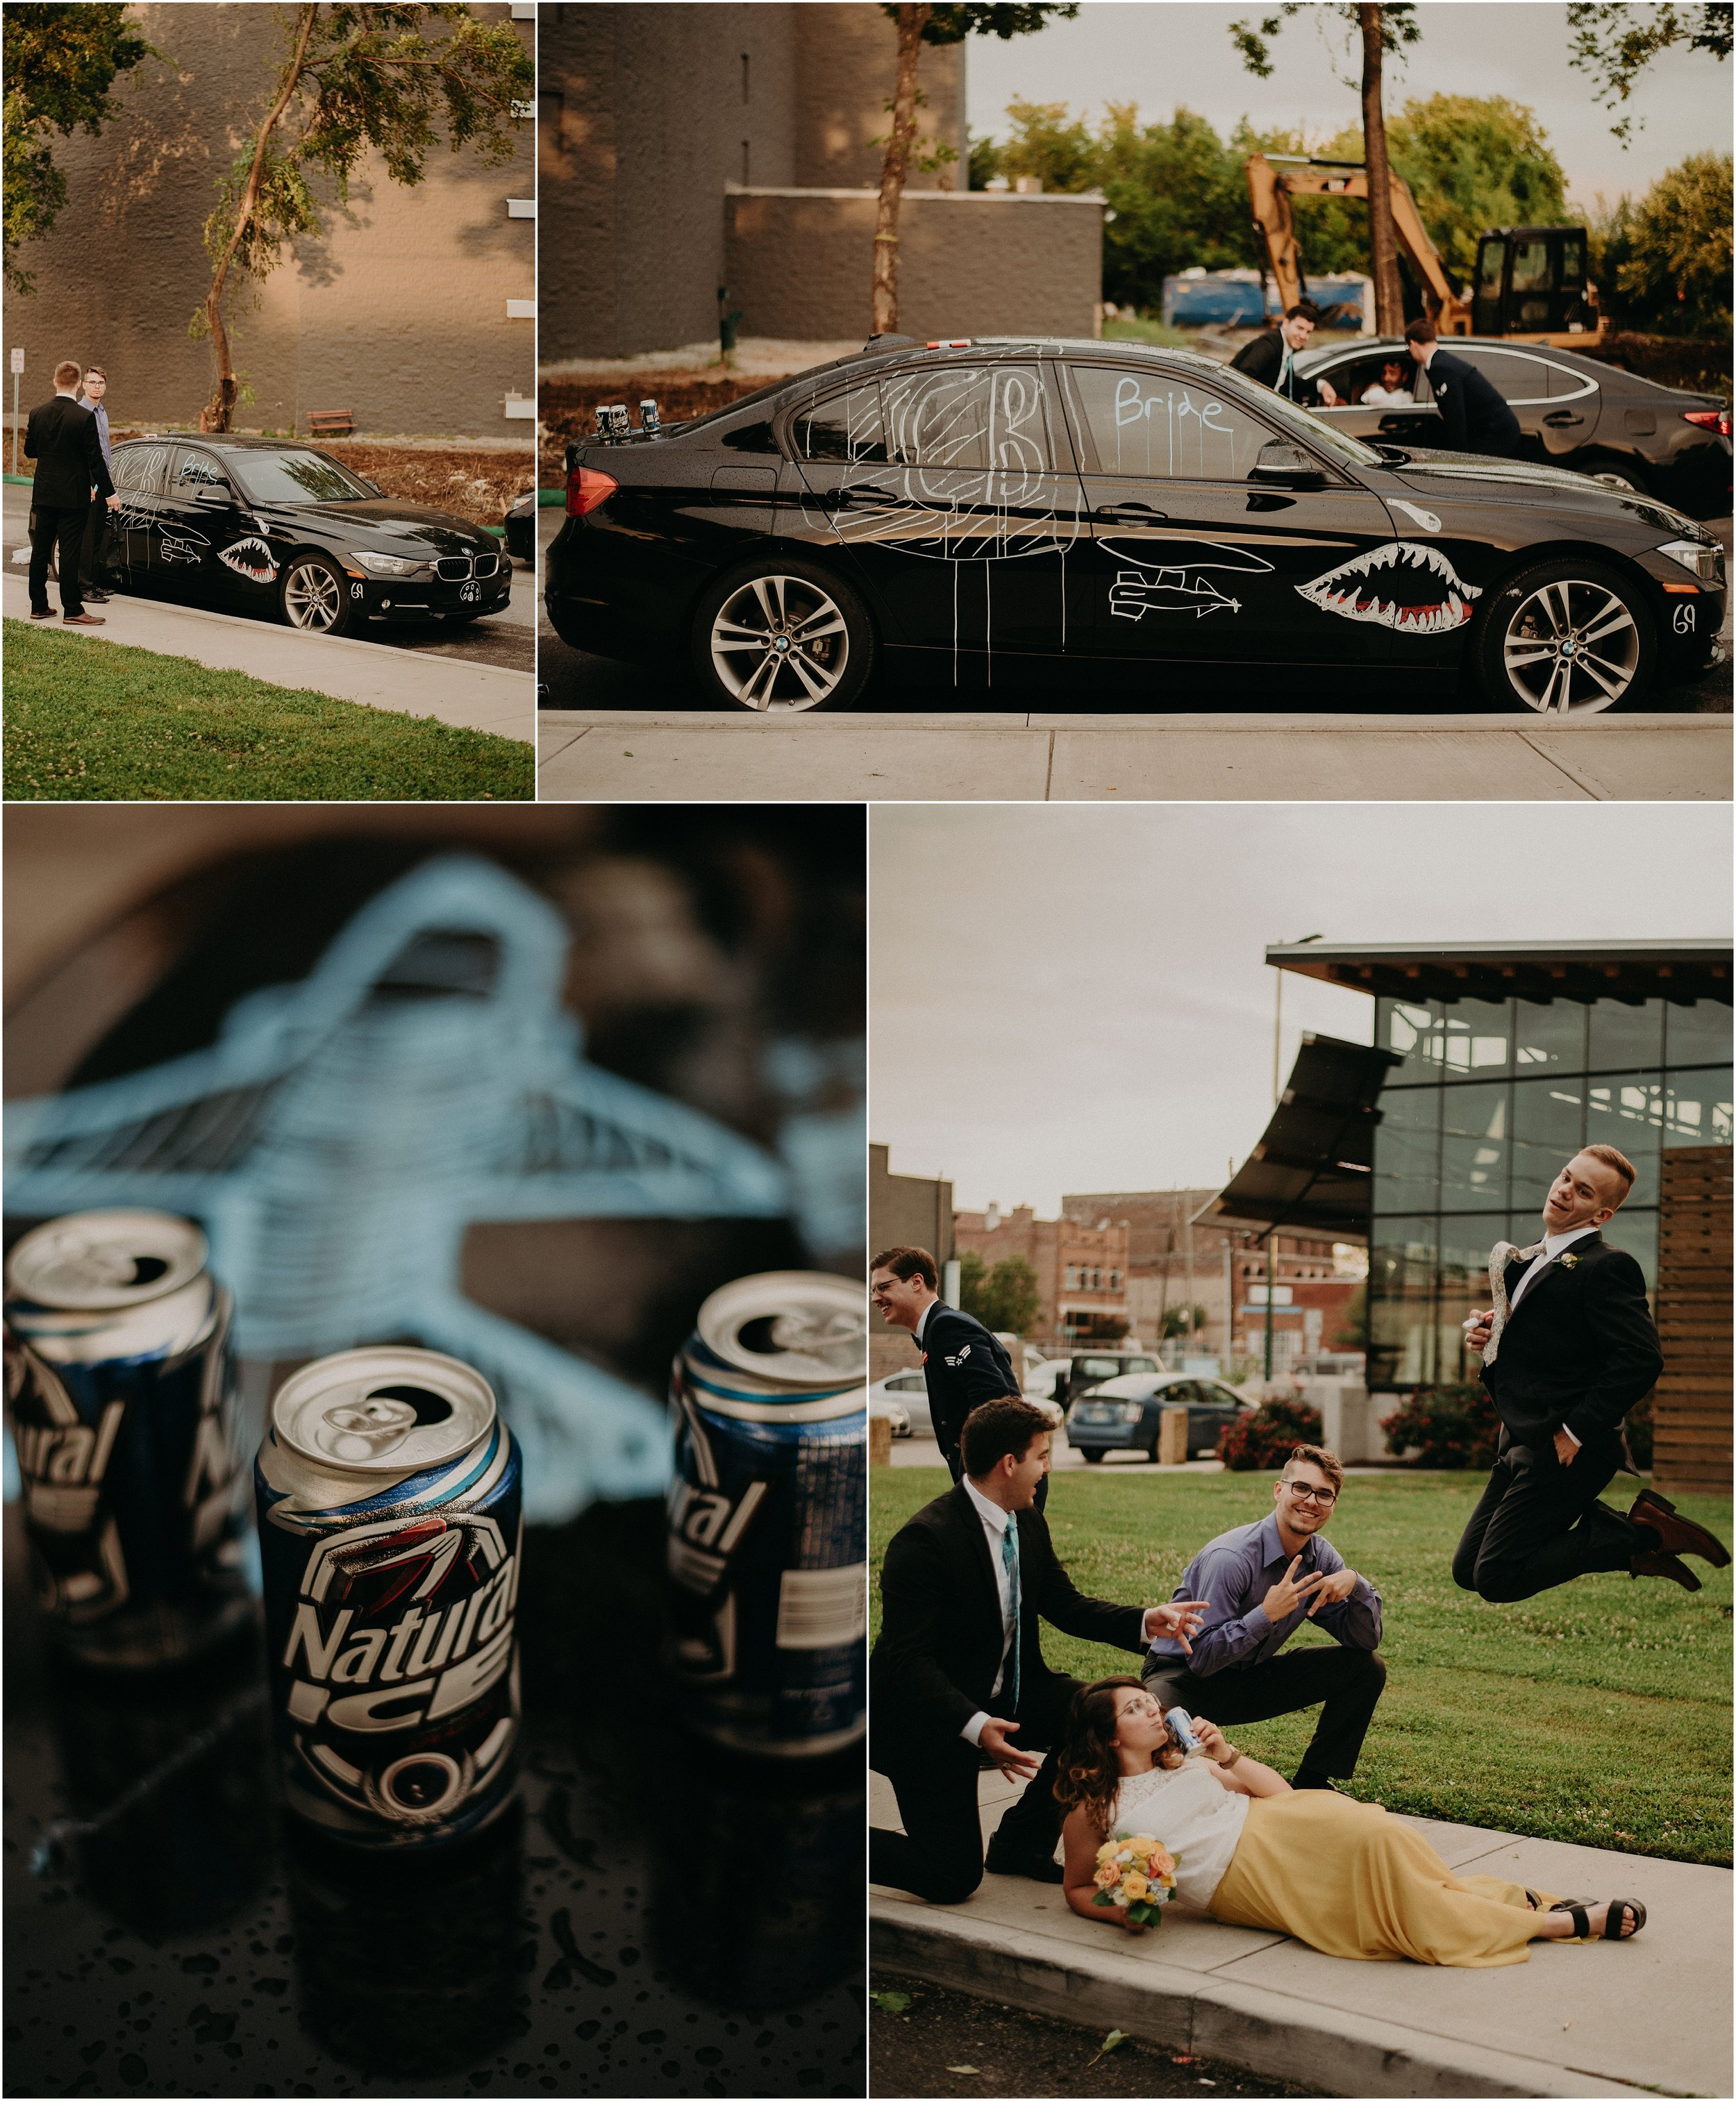 Groomsmen and friends decorate the Bride and Groom's getaway car outside of The Flying Squirrel Bar